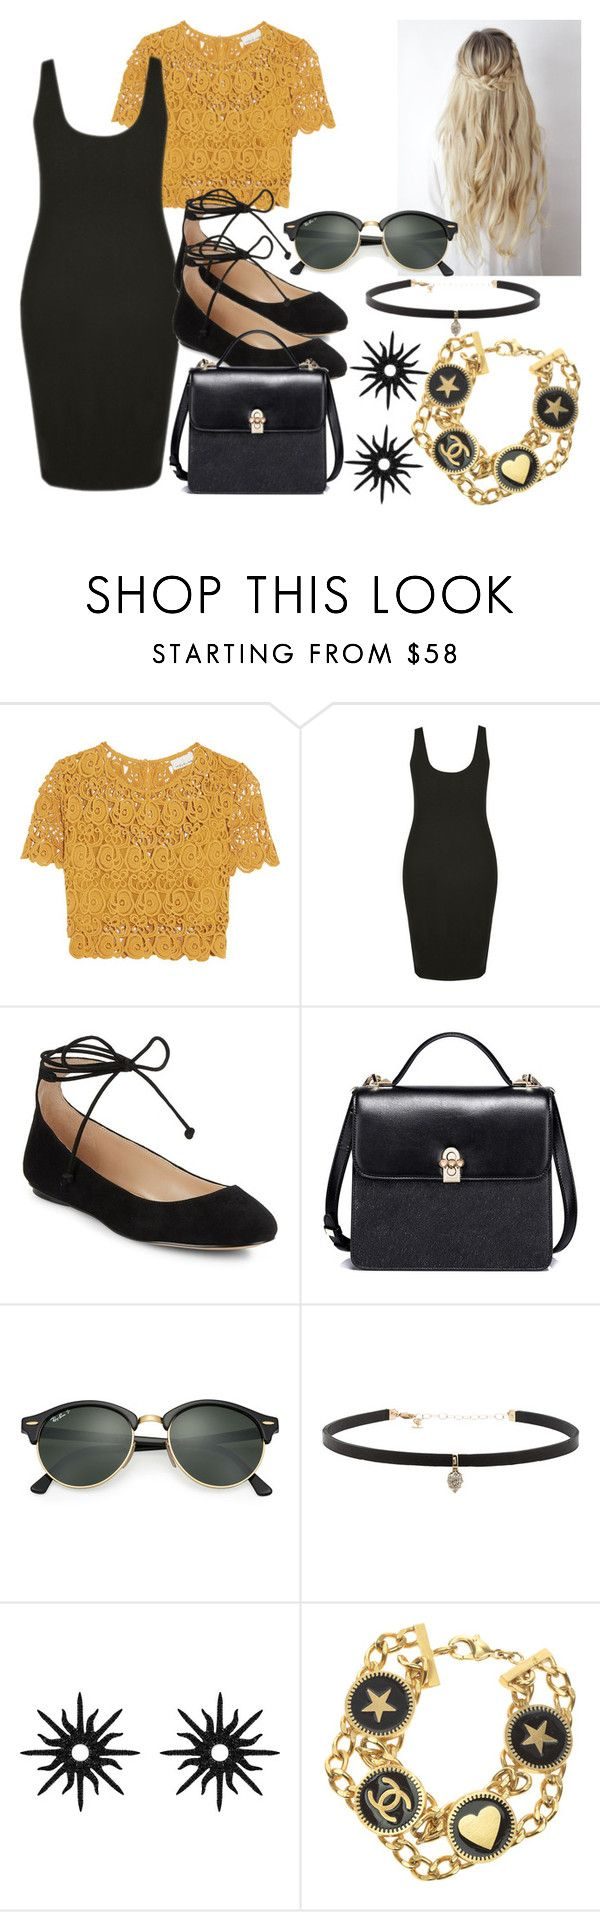 """""""Sem título #10"""" by kauani ❤ liked on Polyvore featuring Miguelina, Karl Lagerfeld, Ray-Ban, Carbon & Hyde, Christina Debs and Chanel"""